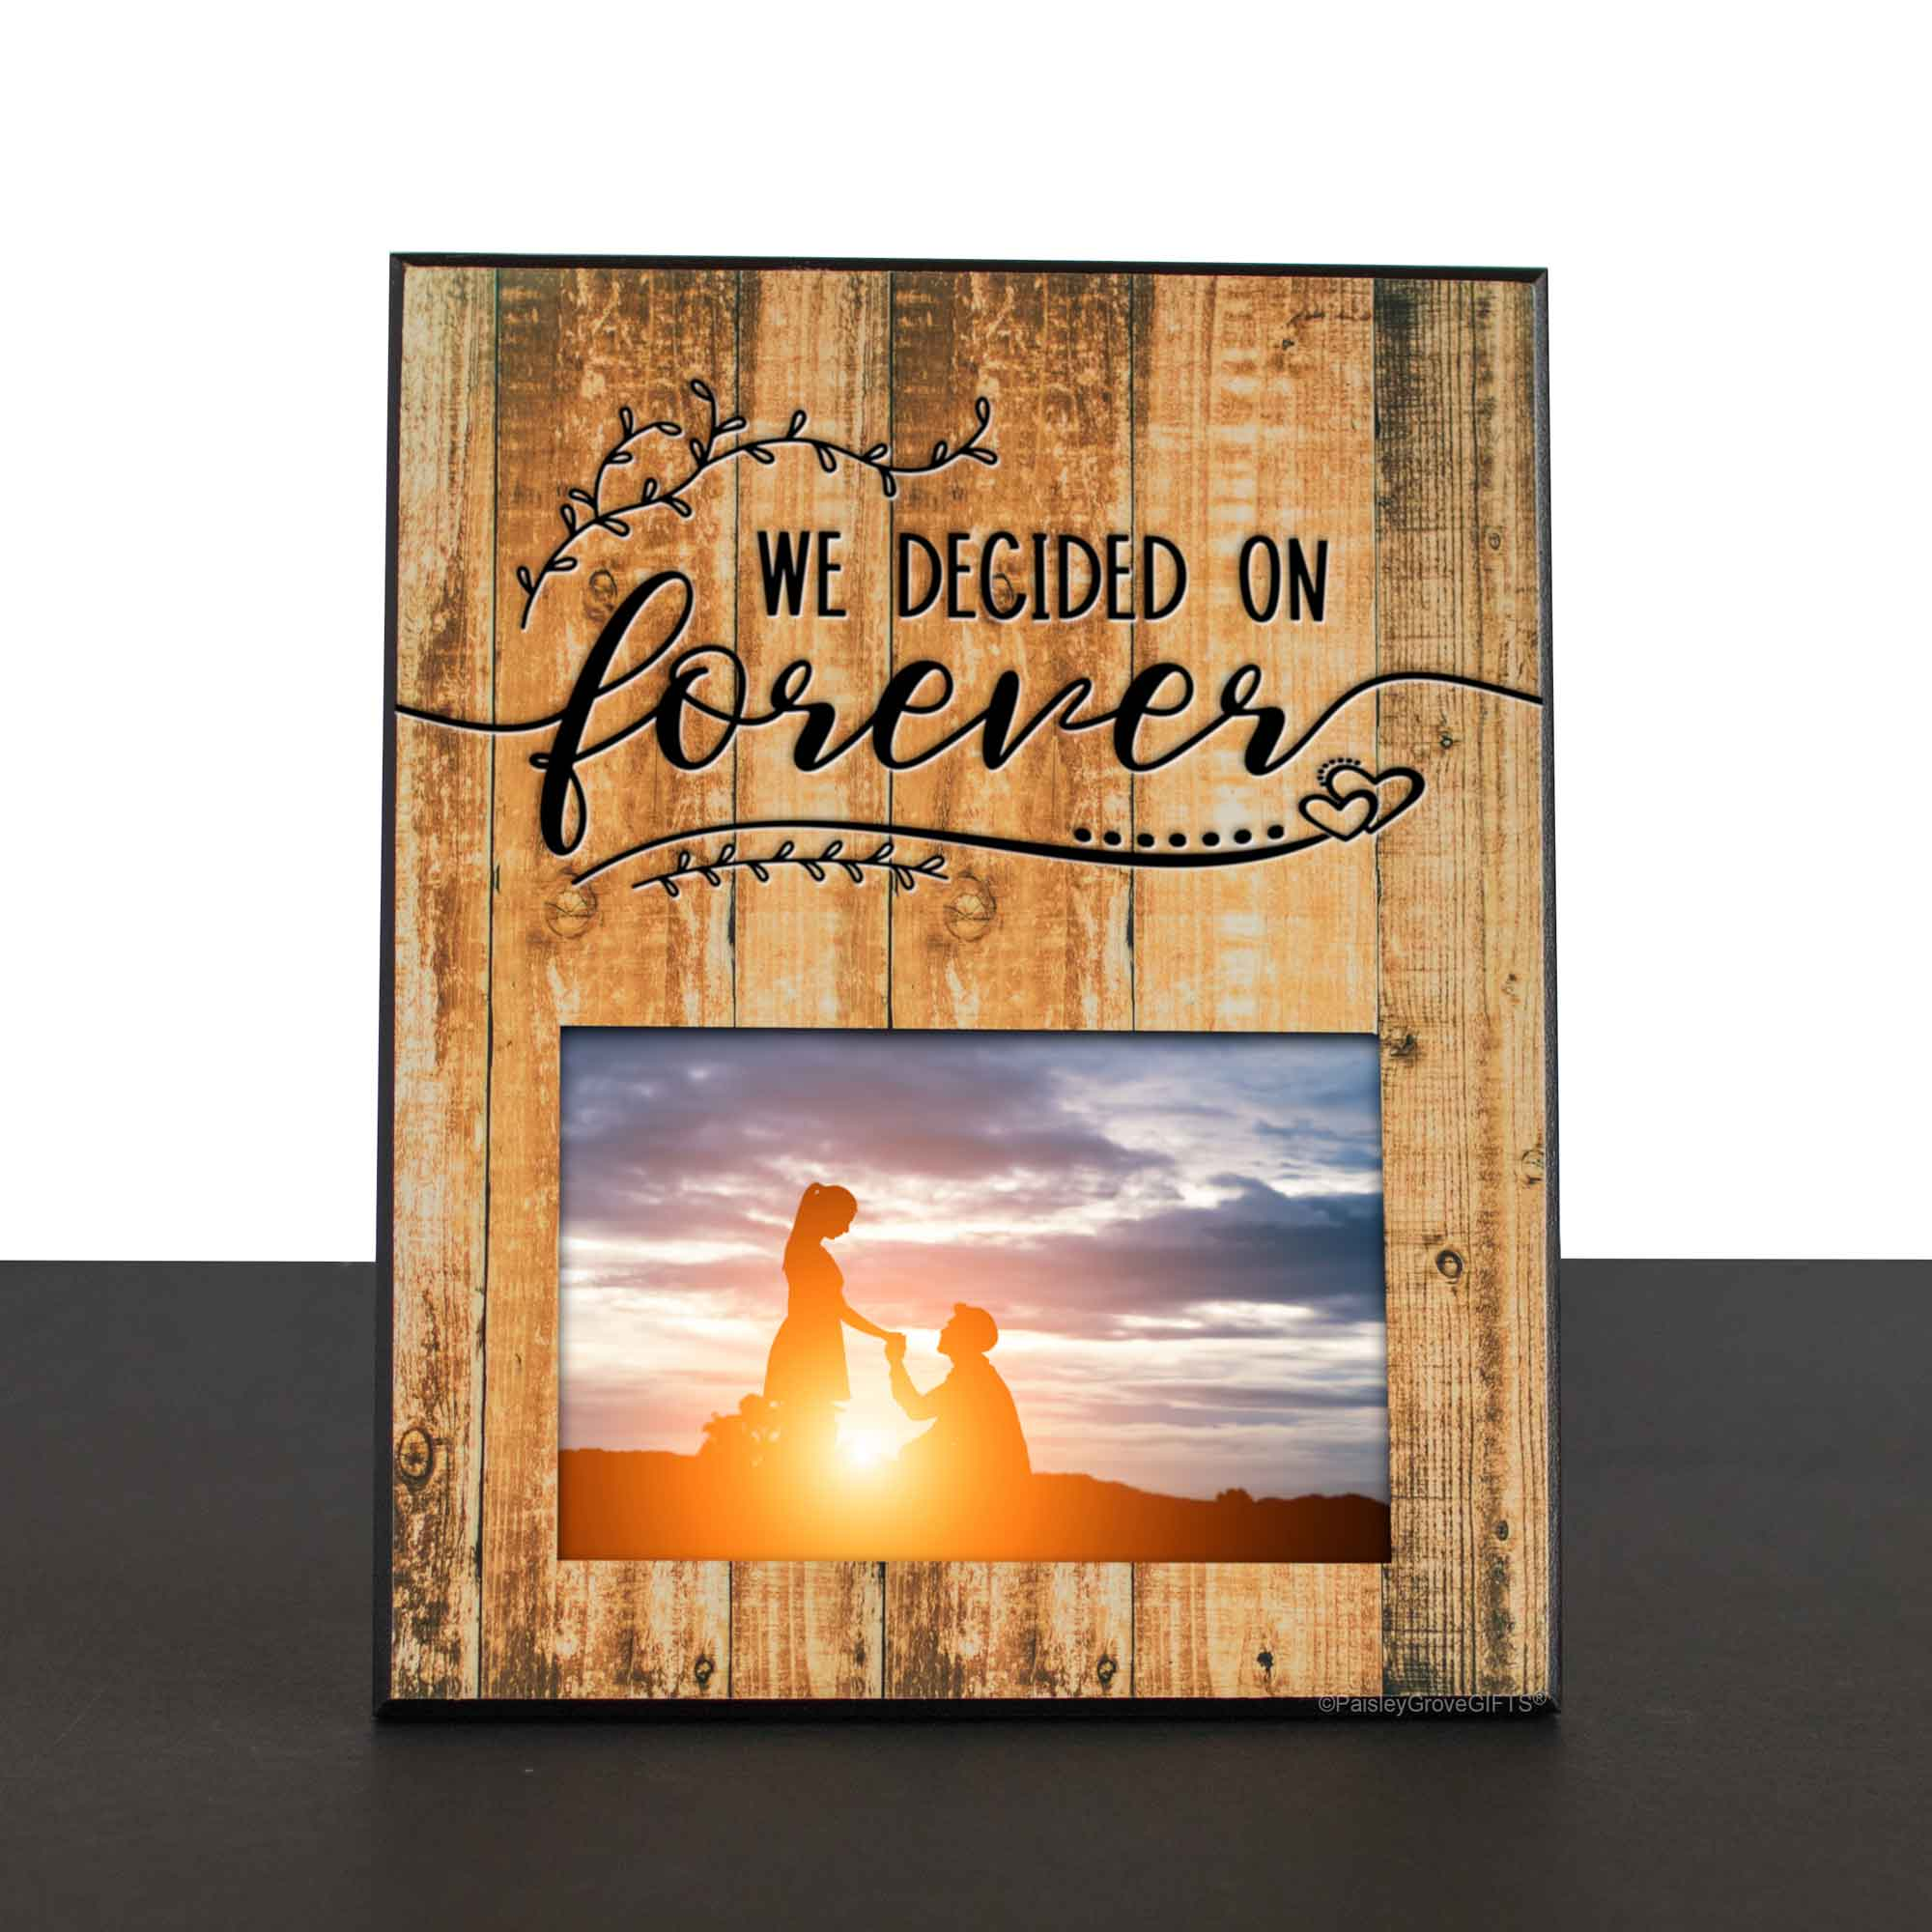 CopyrightPaisleyGroveGIFTS S201c1 Just Engaged Gift for Best Friend New Bride Future Mrs Rustic Wedding Frame